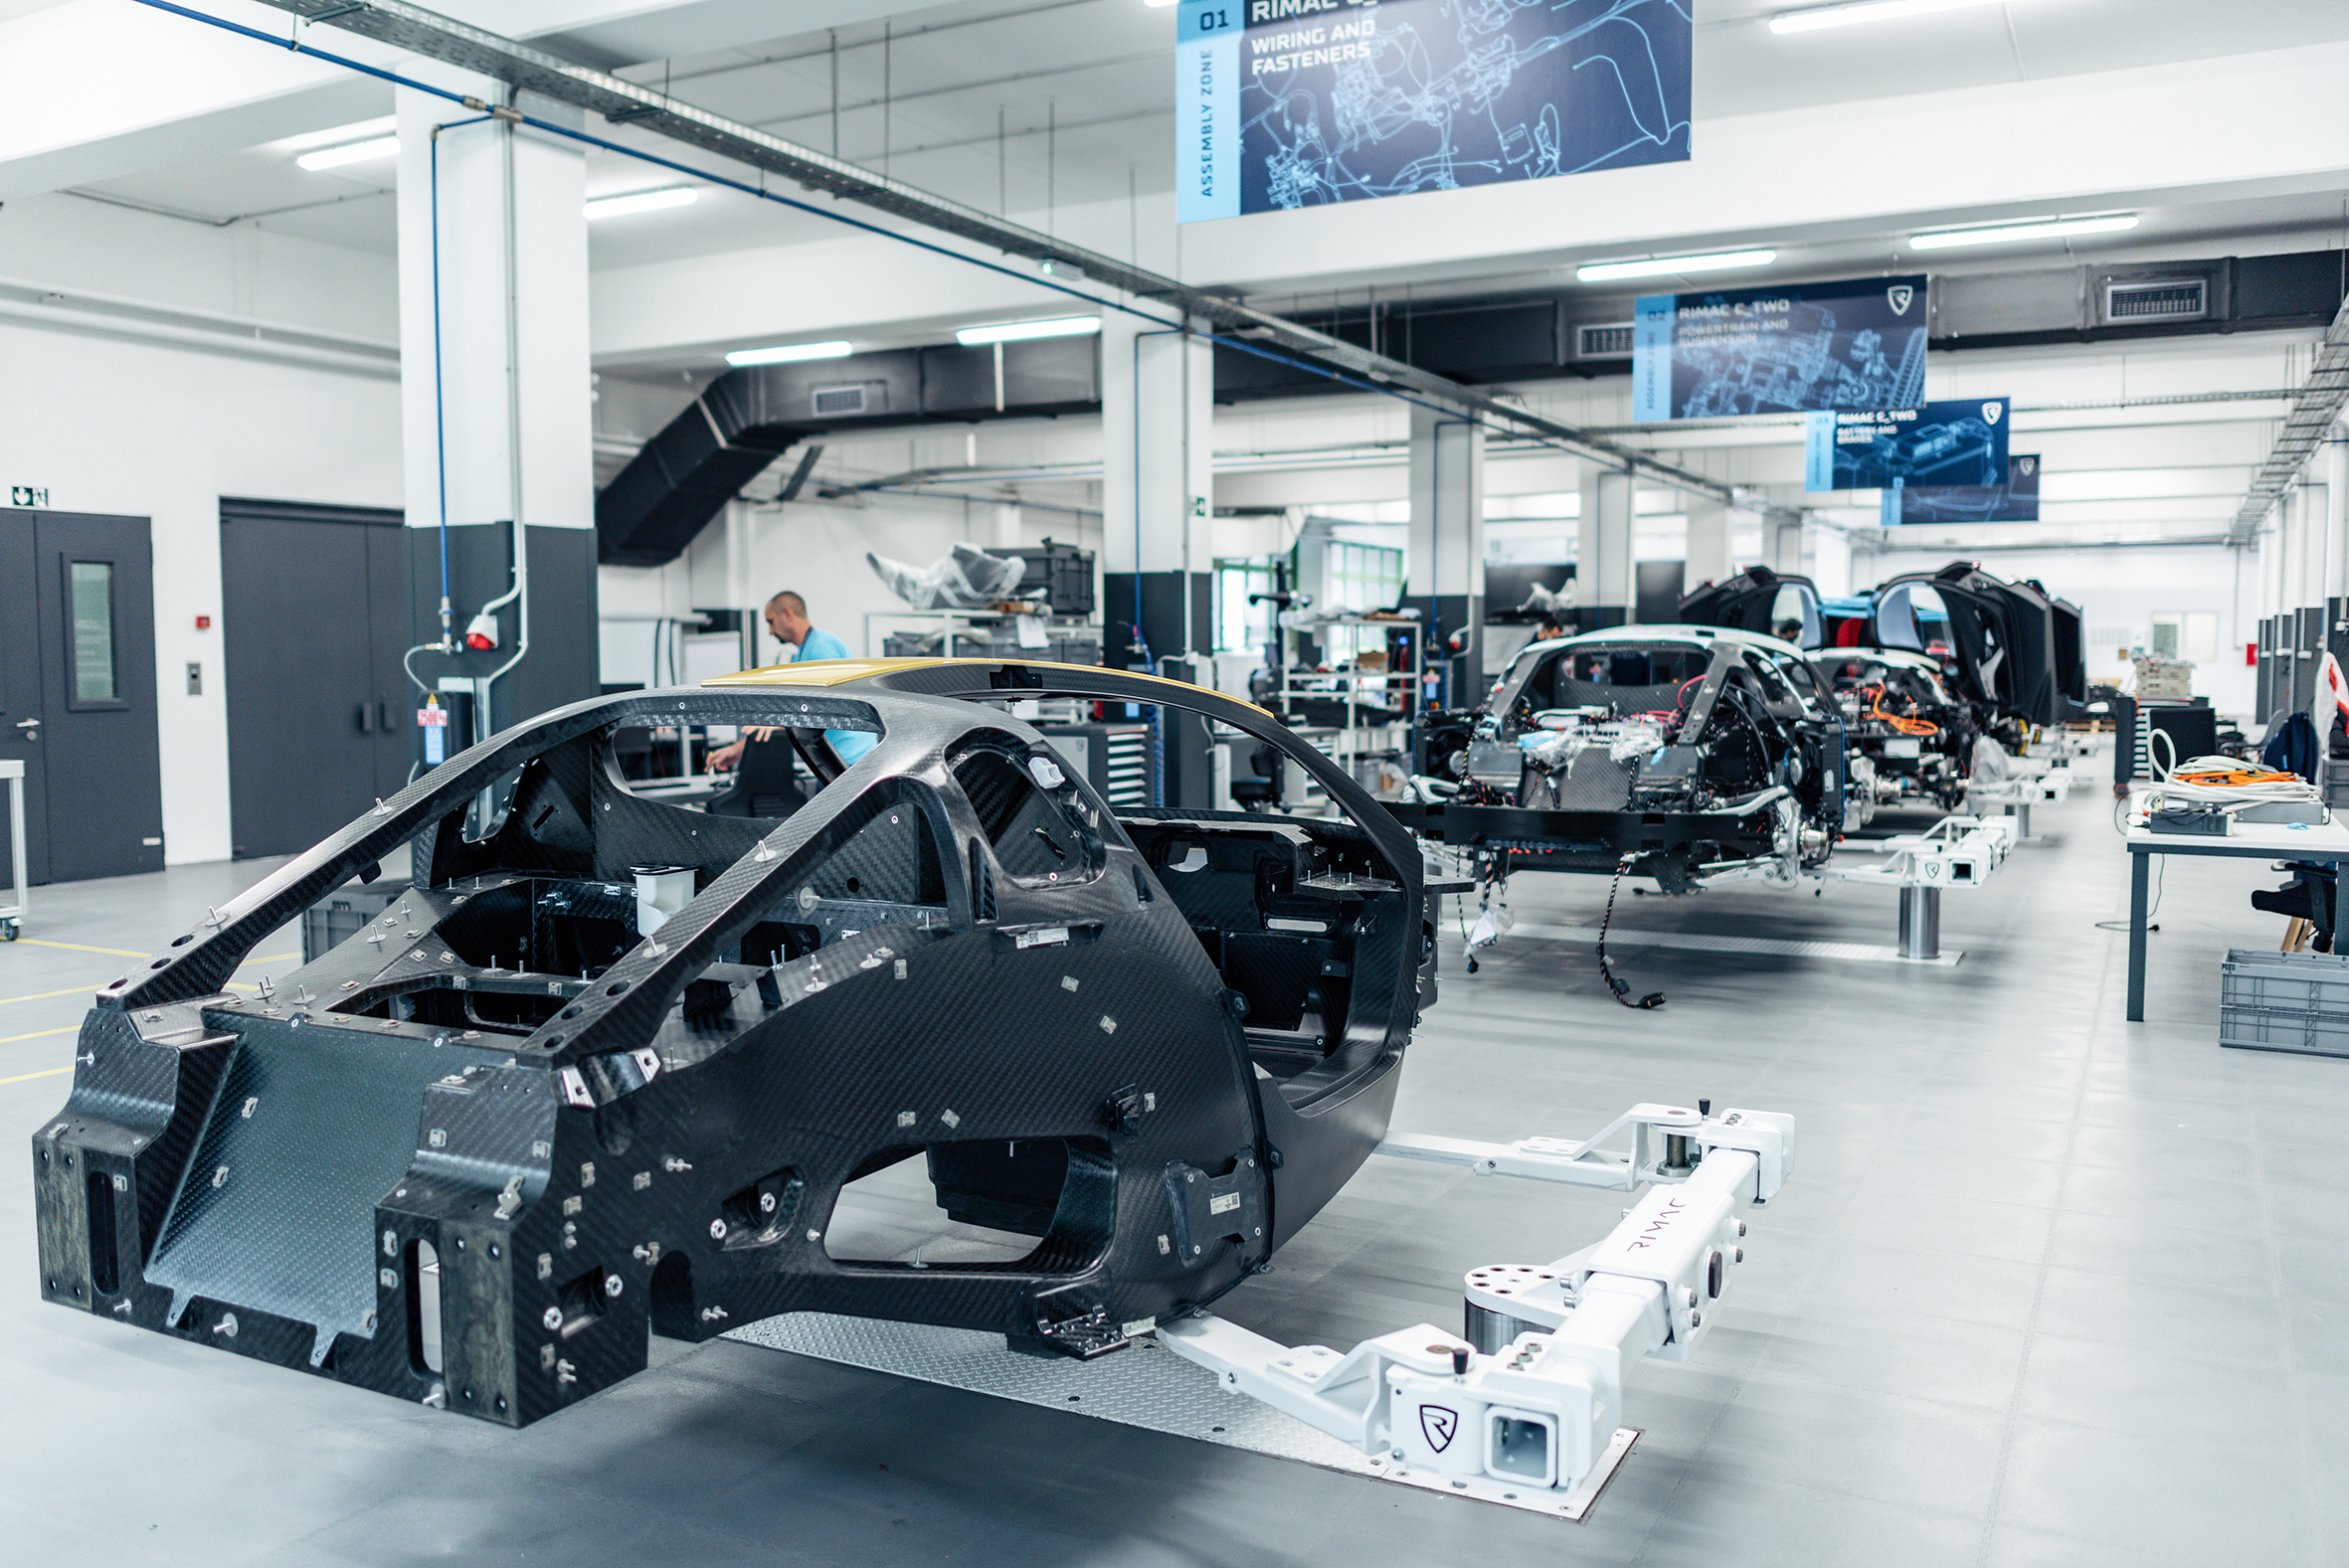 RRimac C_Two assembly line unibody